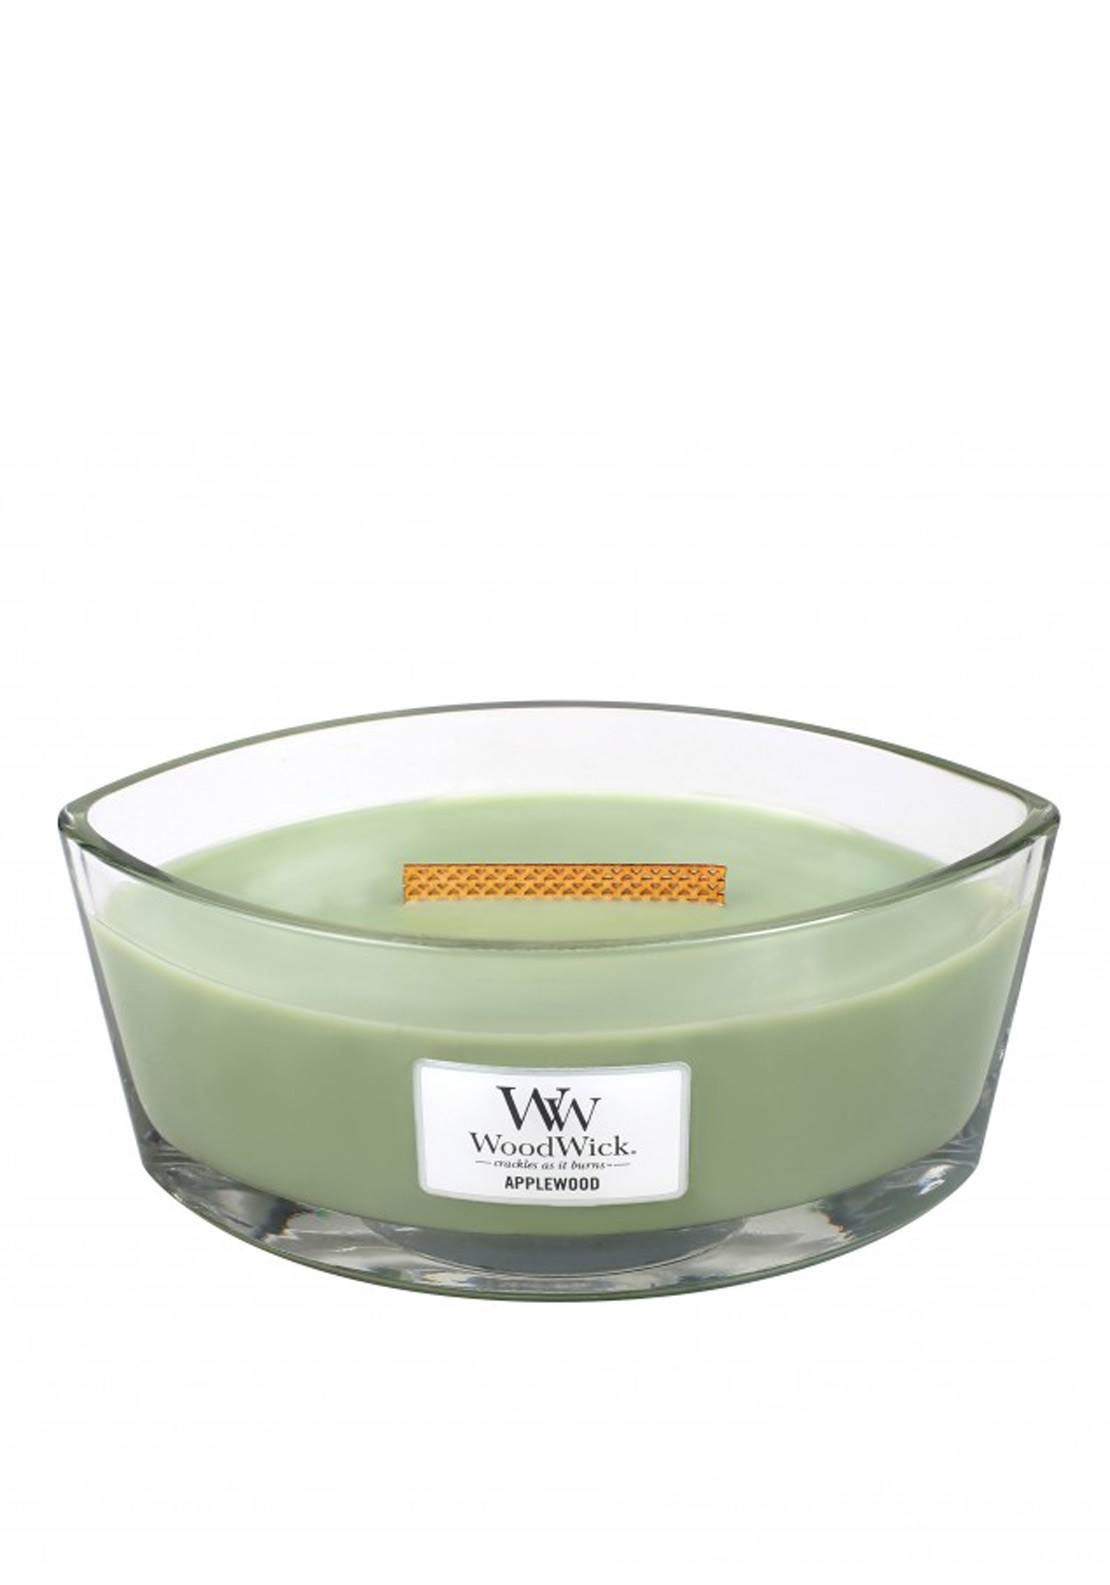 WoodWick Hearthwick Flame Large Candle, Applewood